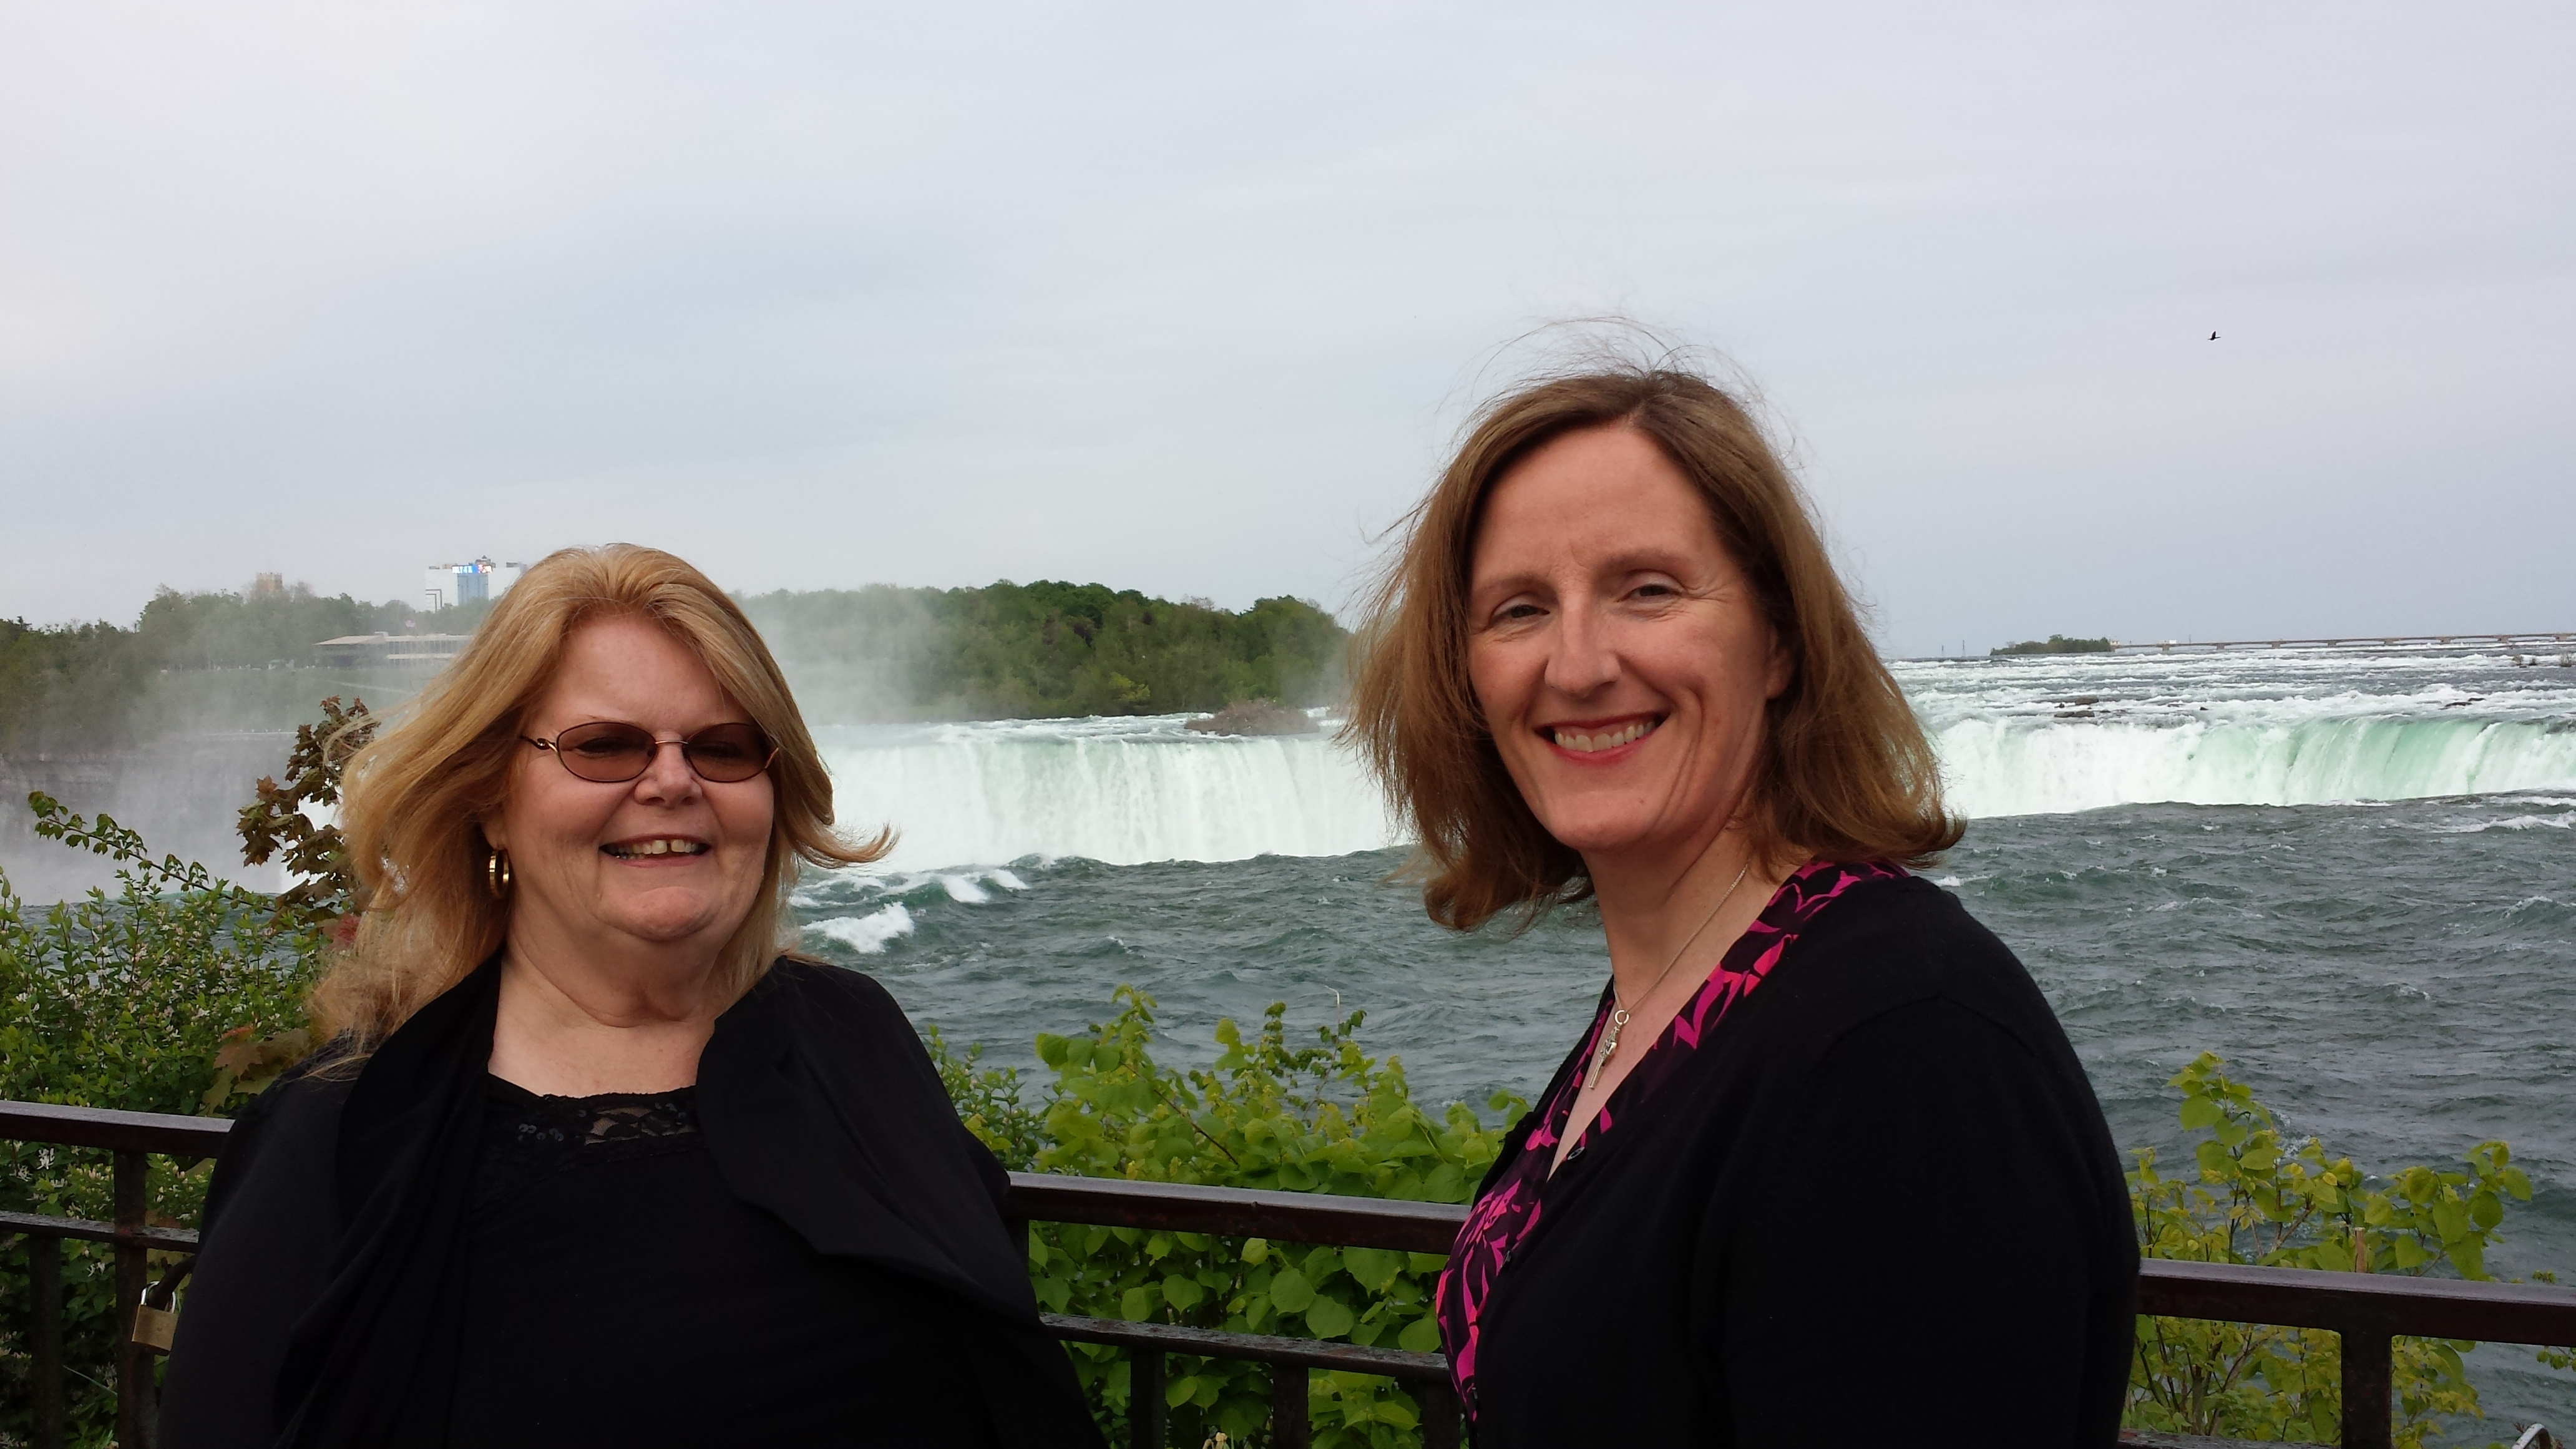 Yorkville University Well-Represented at the Canadian Counselling and Psychotherapy Association Conference in Niagara Falls